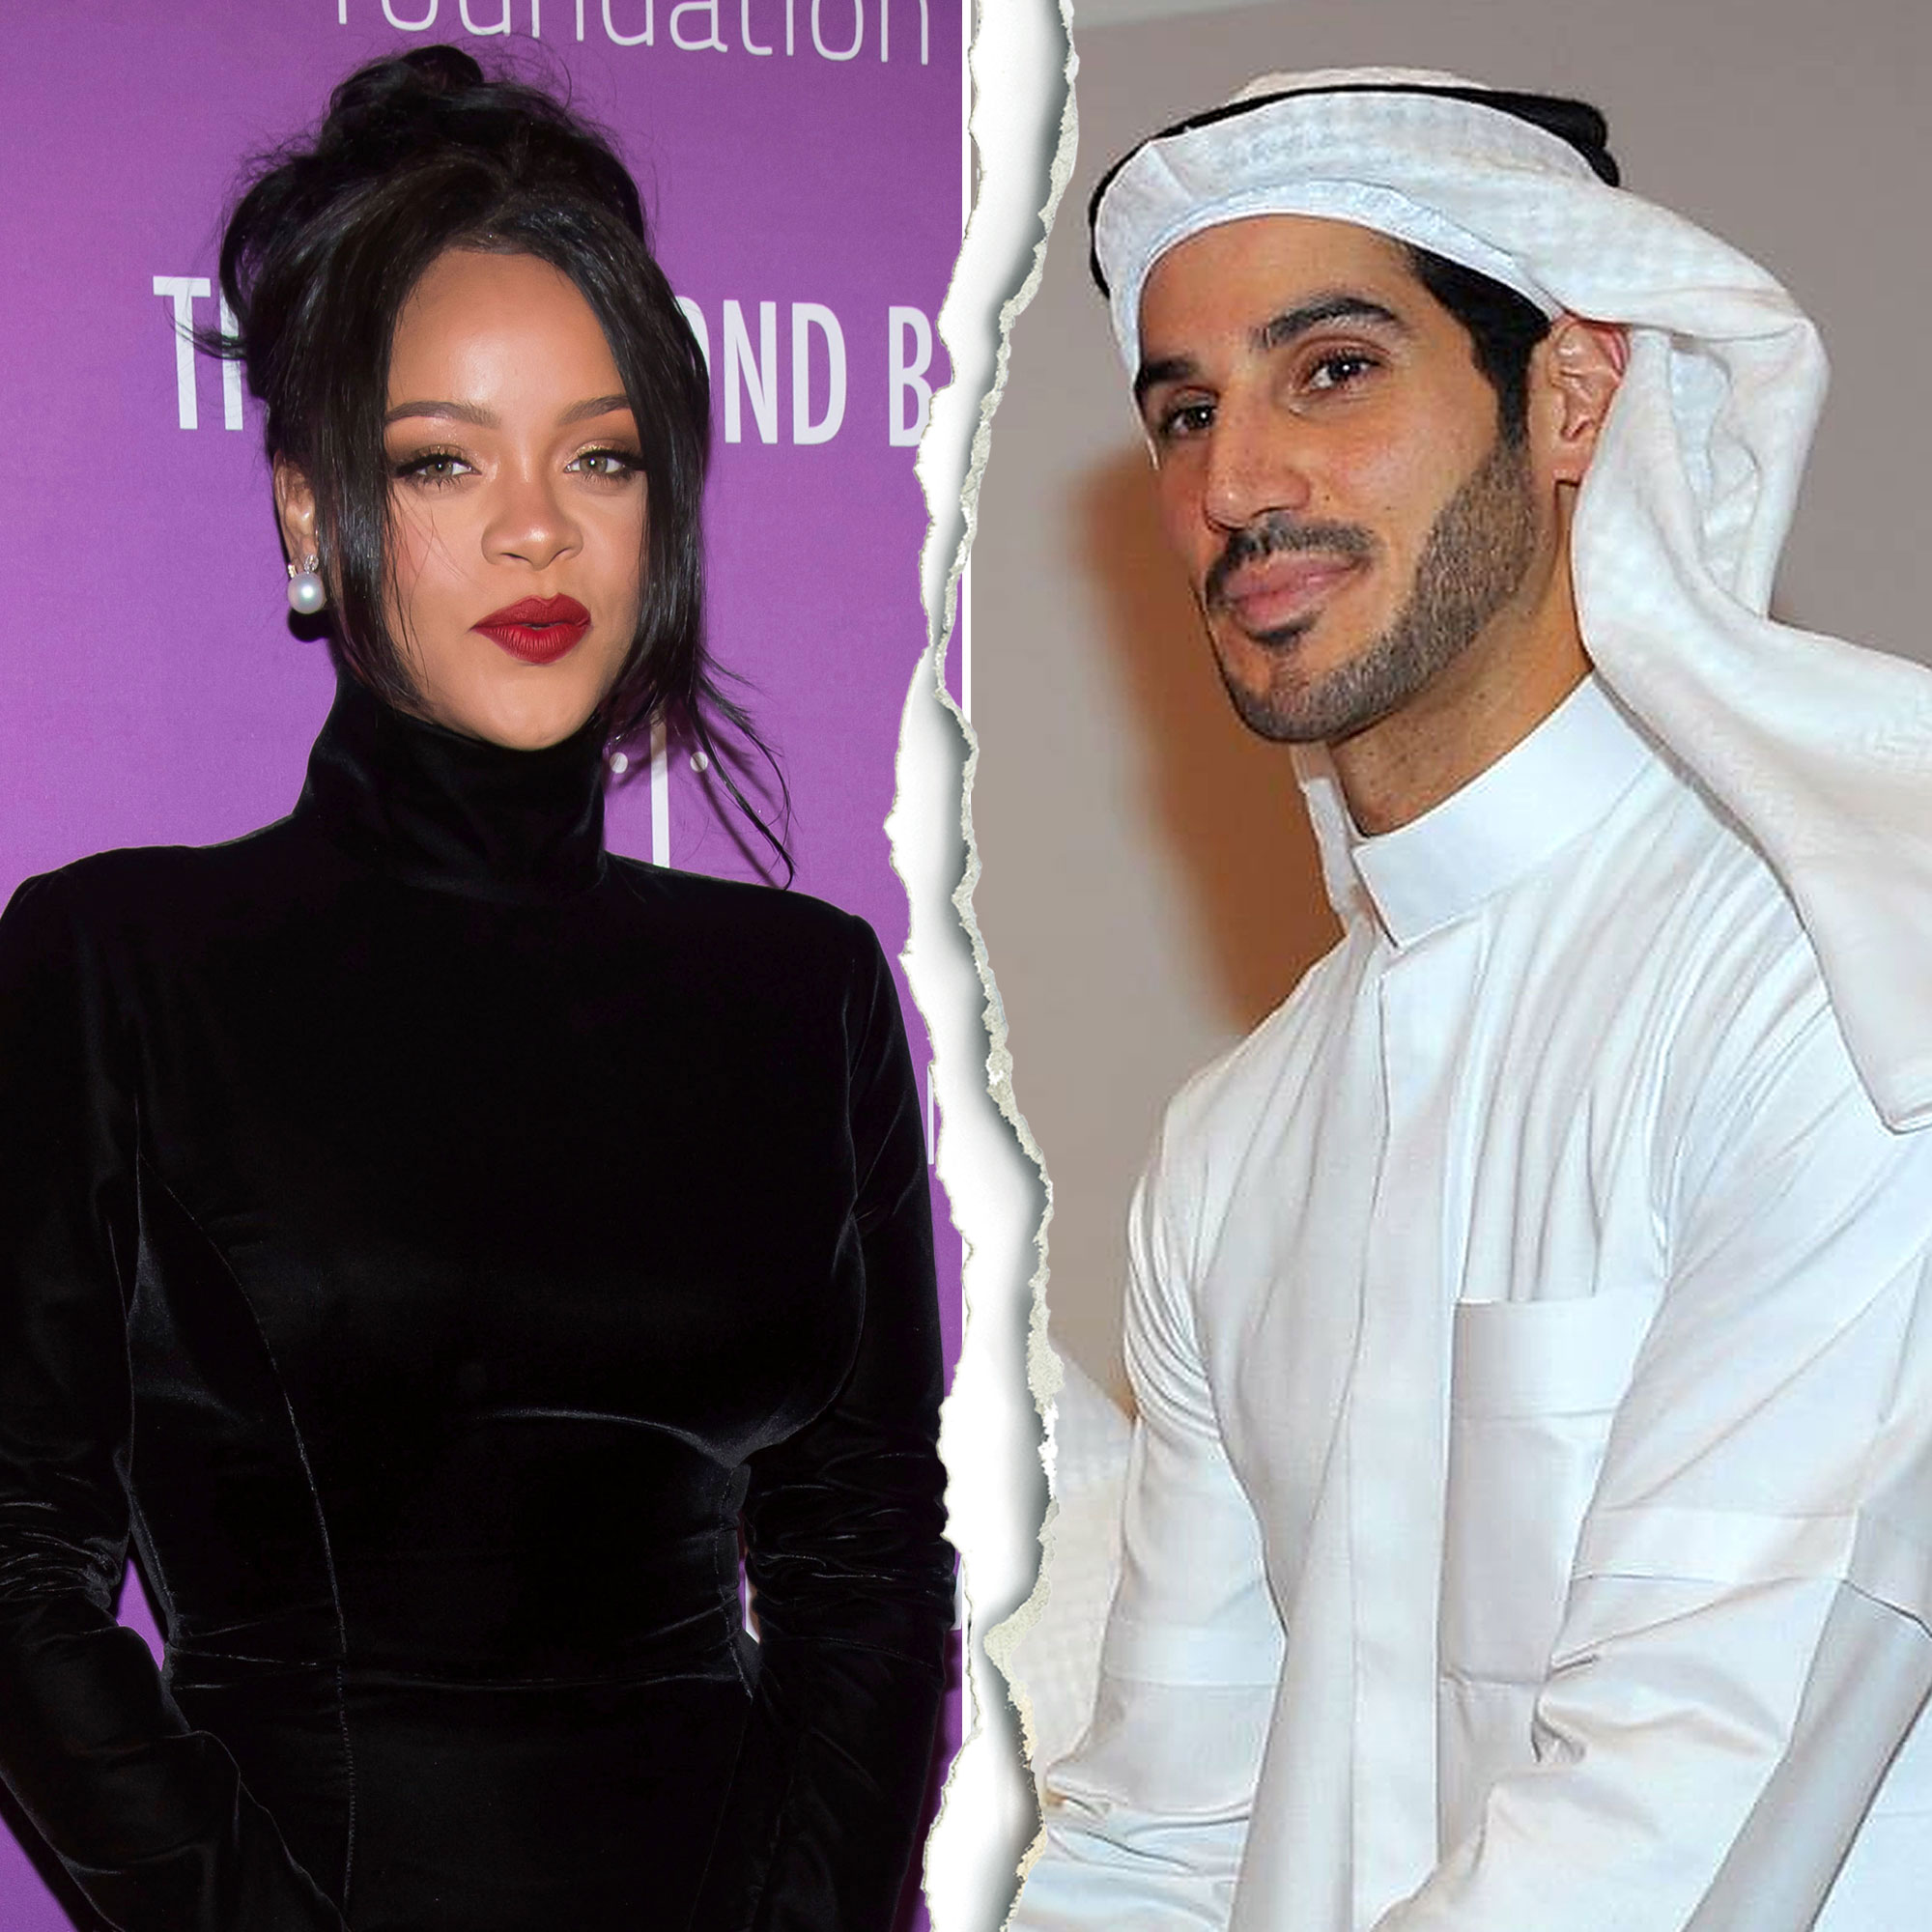 Celebrity Splits Of 2020 Stars Who Broke Up This Year We assume, none of them even bothered even officially. celebrity splits of 2020 stars who